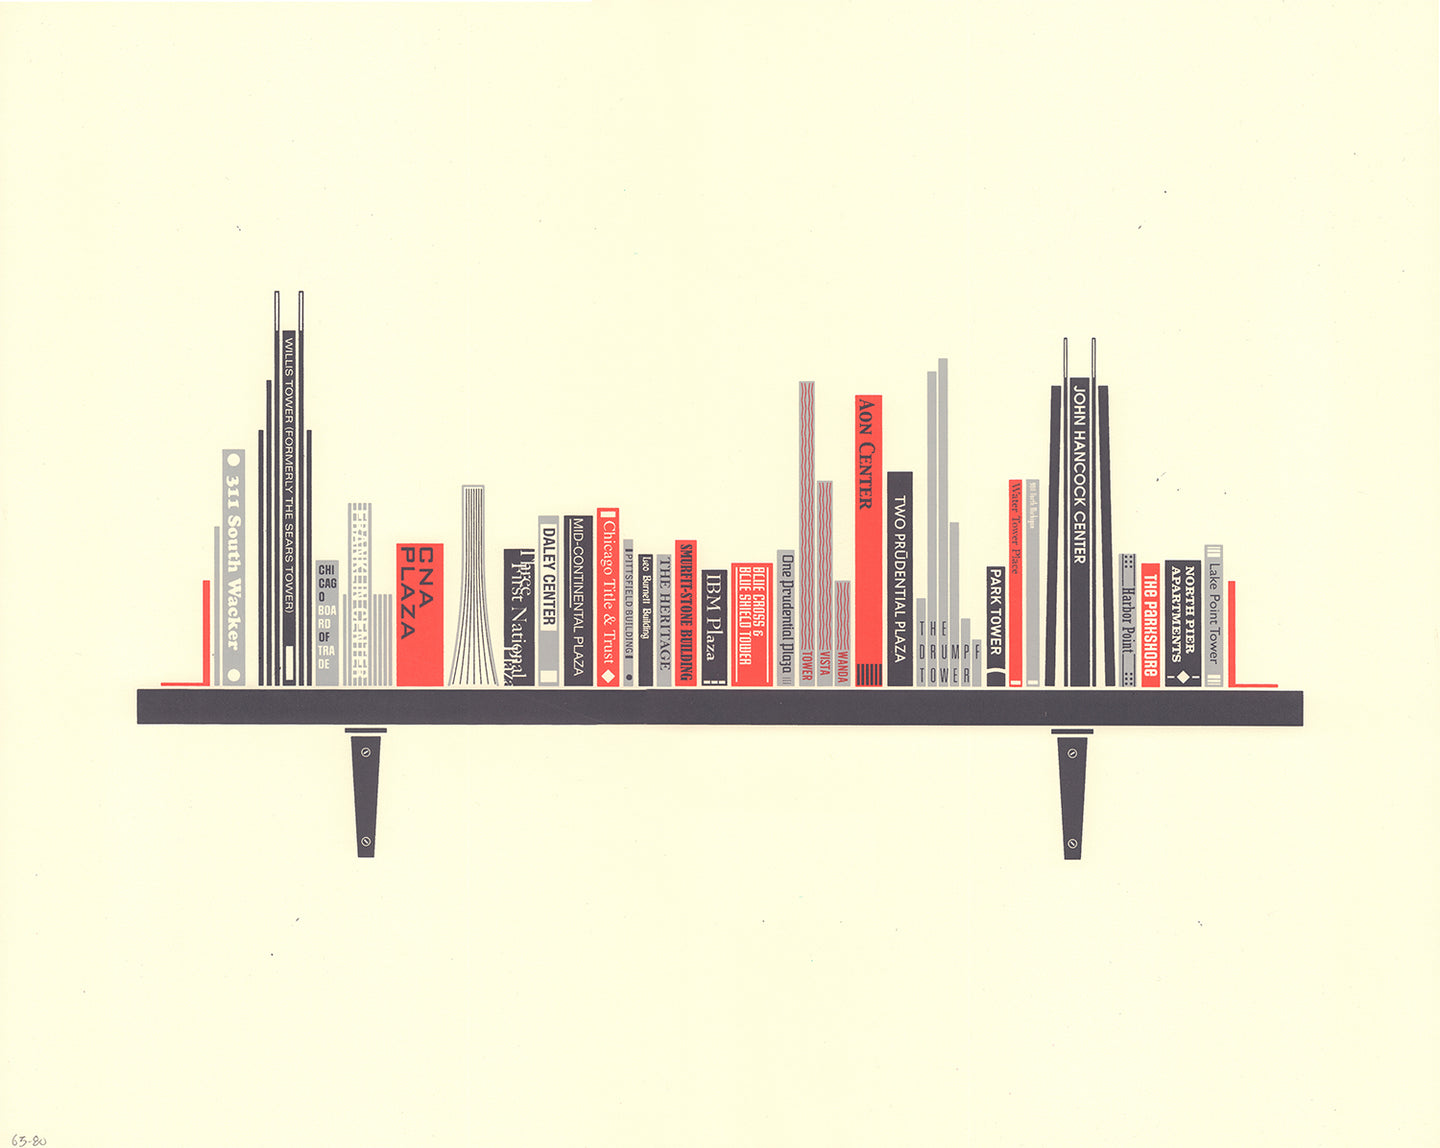 Bookshelf Chicago Print 2019 Updated Edition by Sean Mort